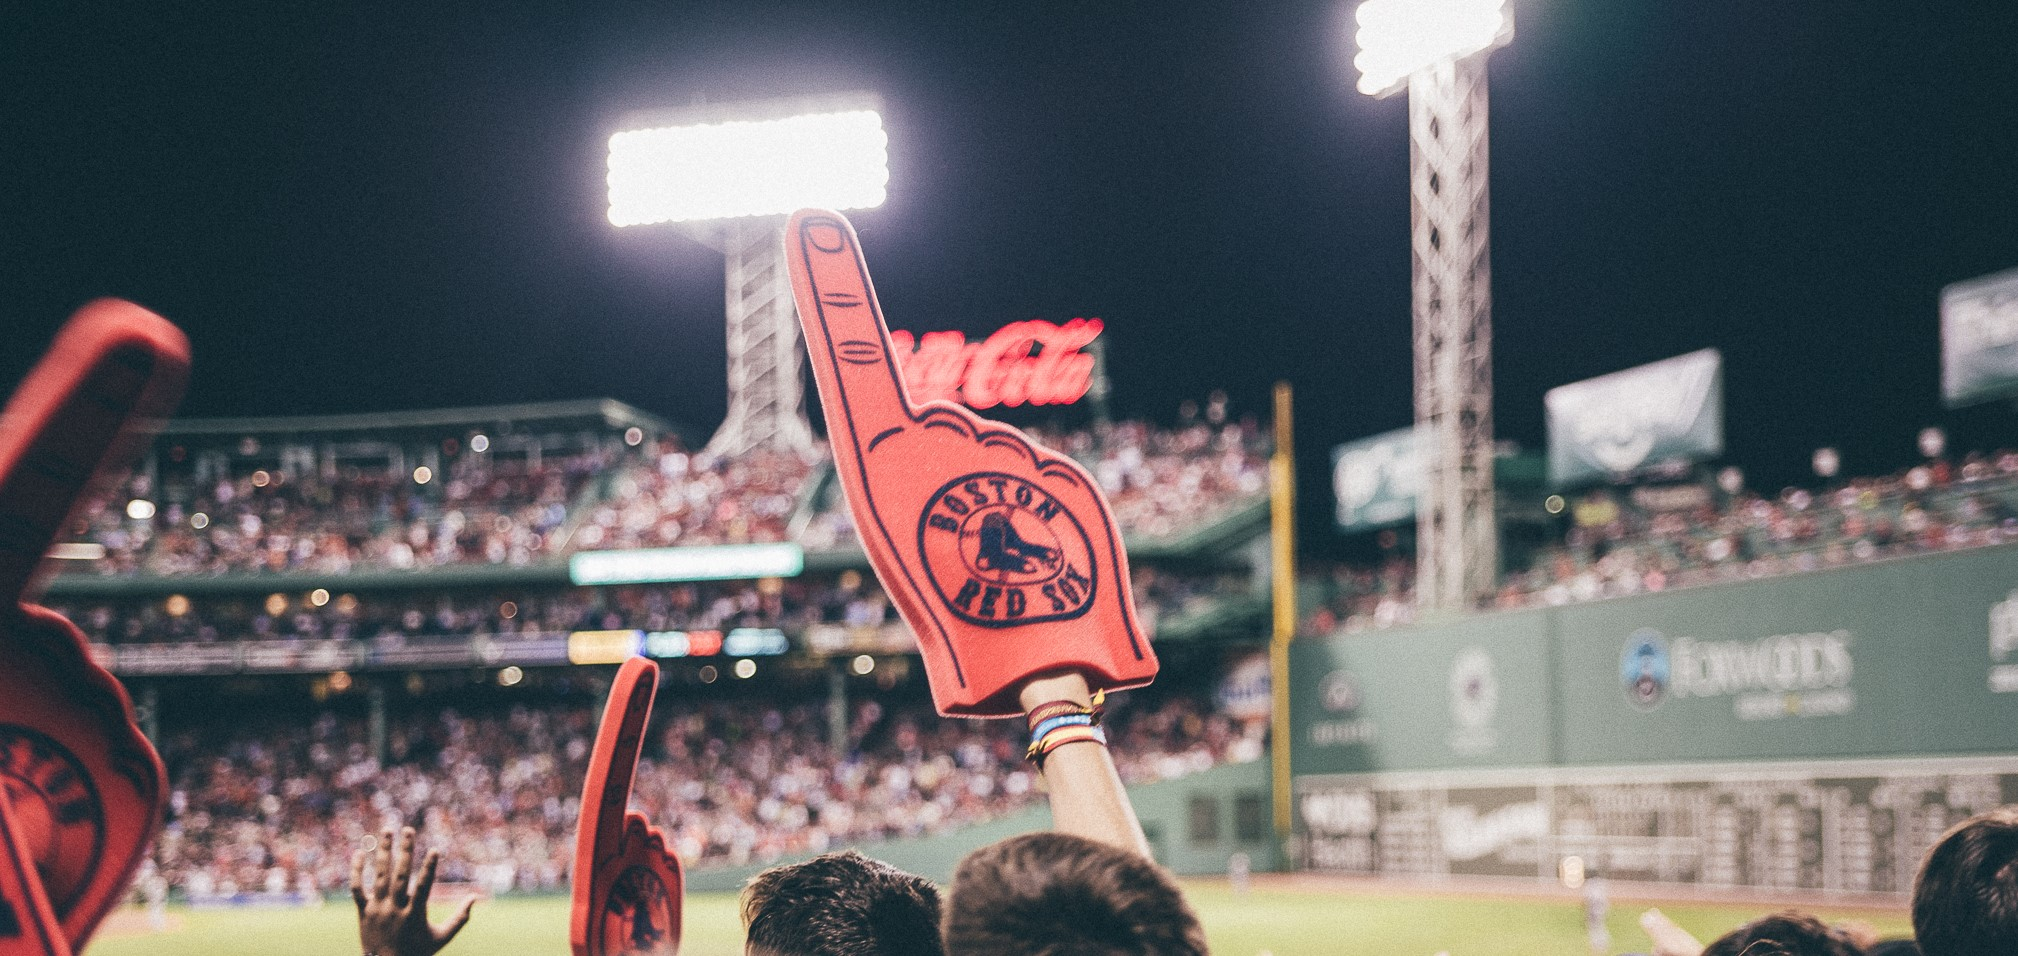 A fan holds up a foam finger while cheering at a Boston Red Sox game at Fenway Park.